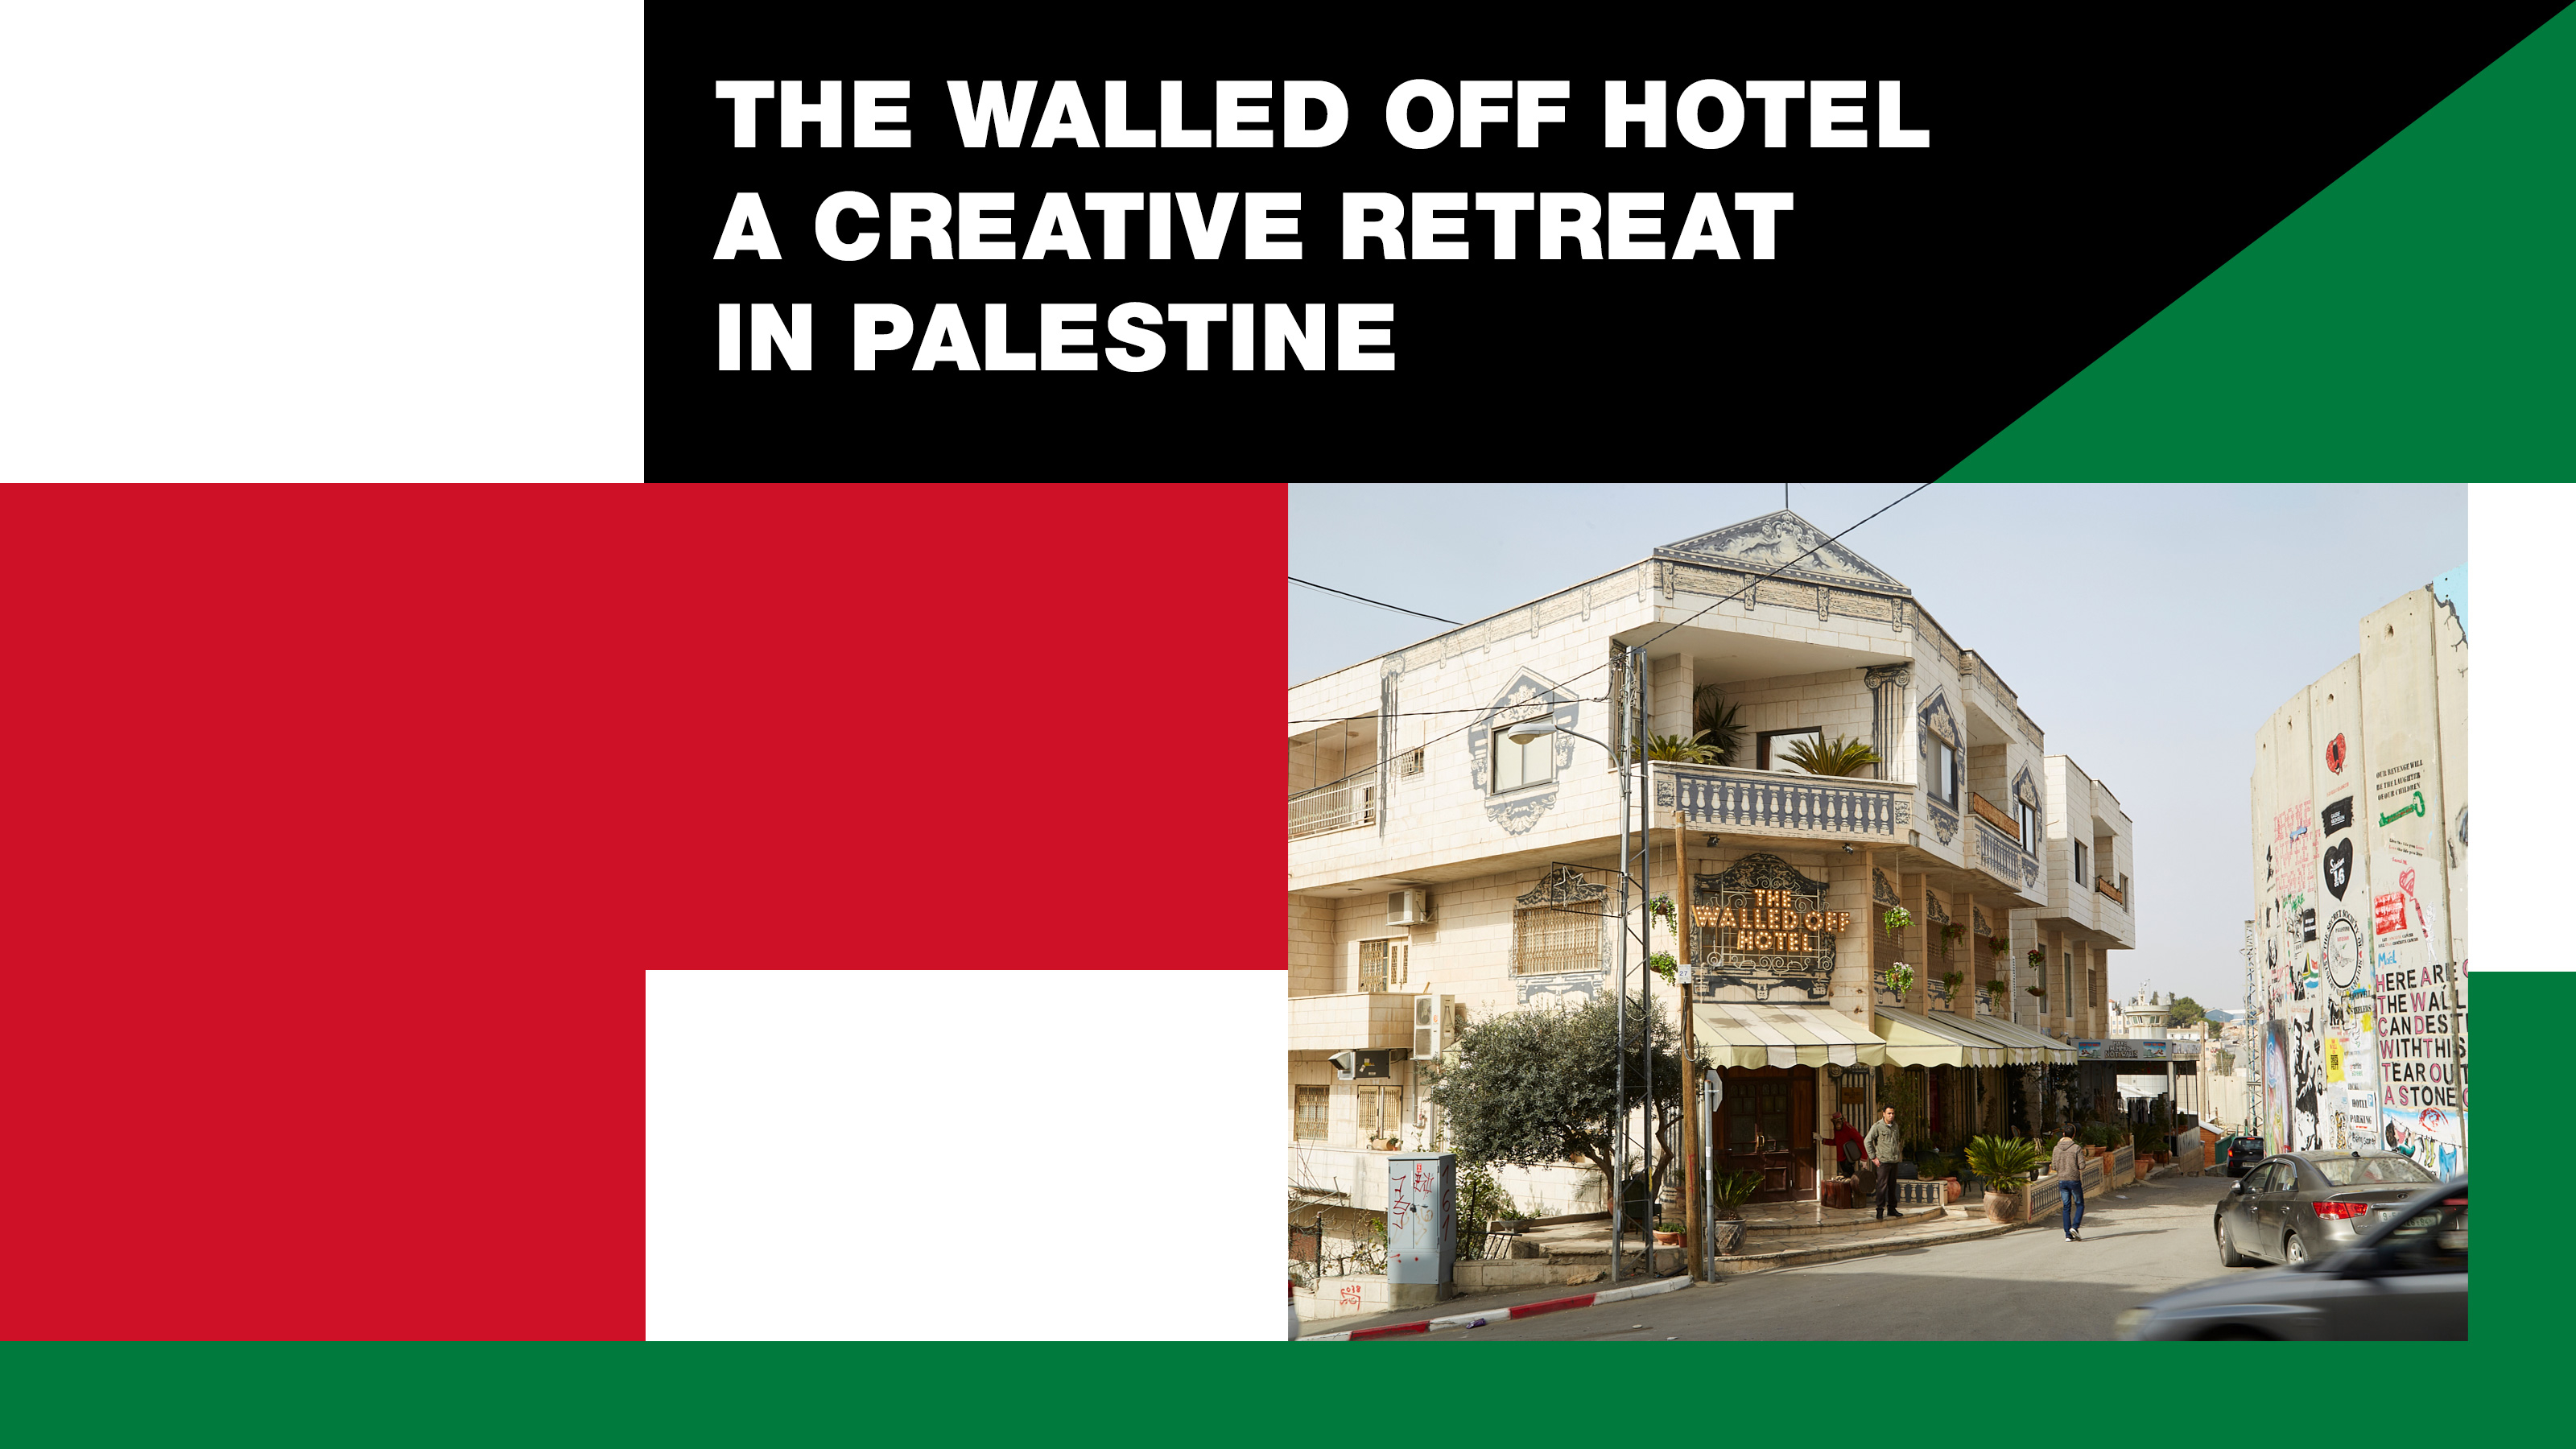 RA: The Walled Off Hotel: A creative retreat in Palestine